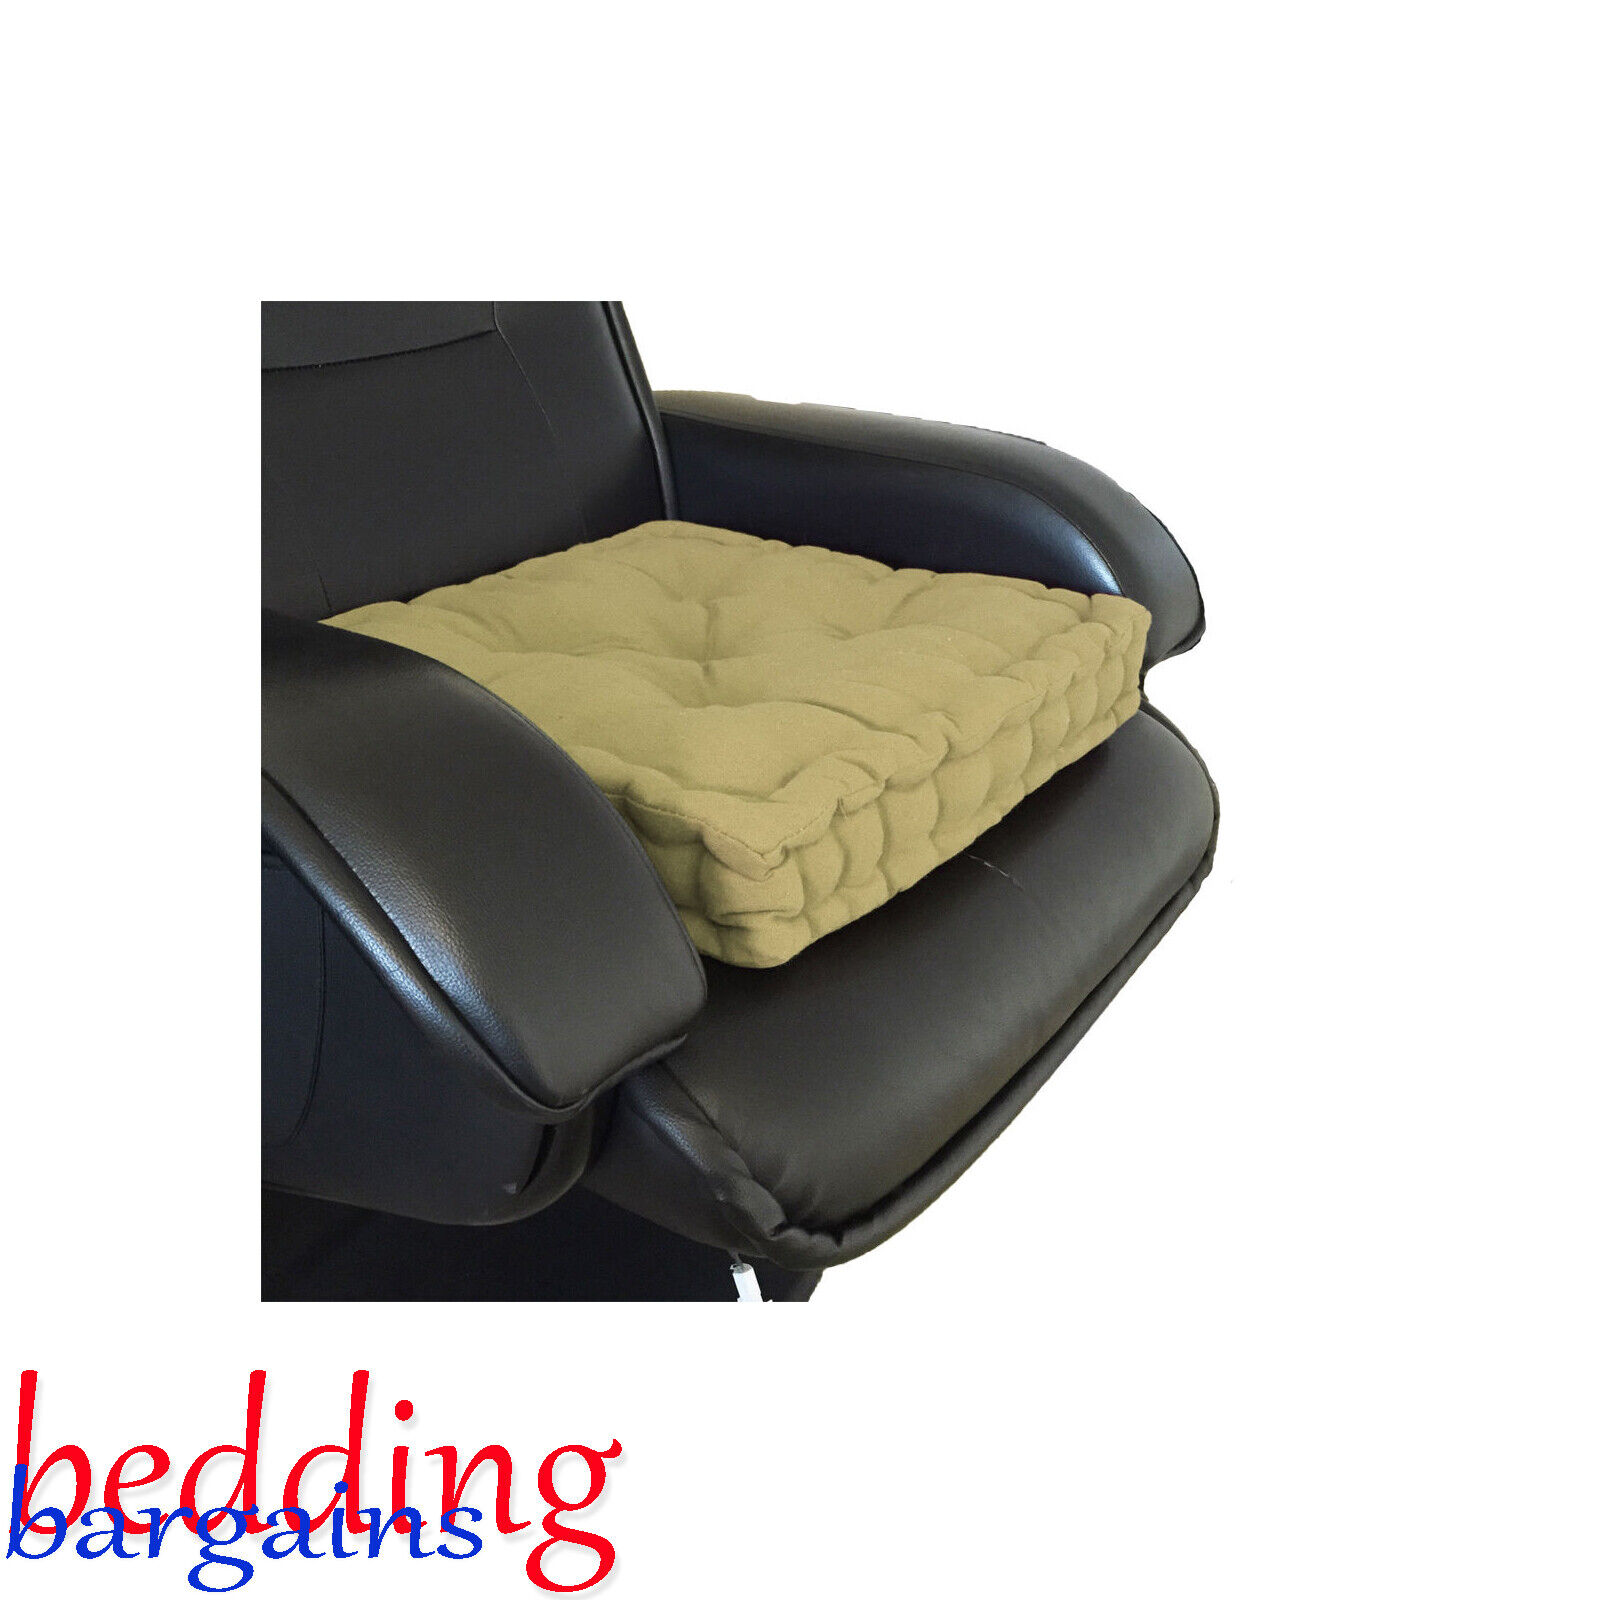 Sf Manchester SFM NEW ADULT CHUNKY BOOSTER CUSHION 100/% COTTON CHAIR SEAT PAD FOR SOFA GARDEN Comfortable Home Office Cushions Uk Stock Blue